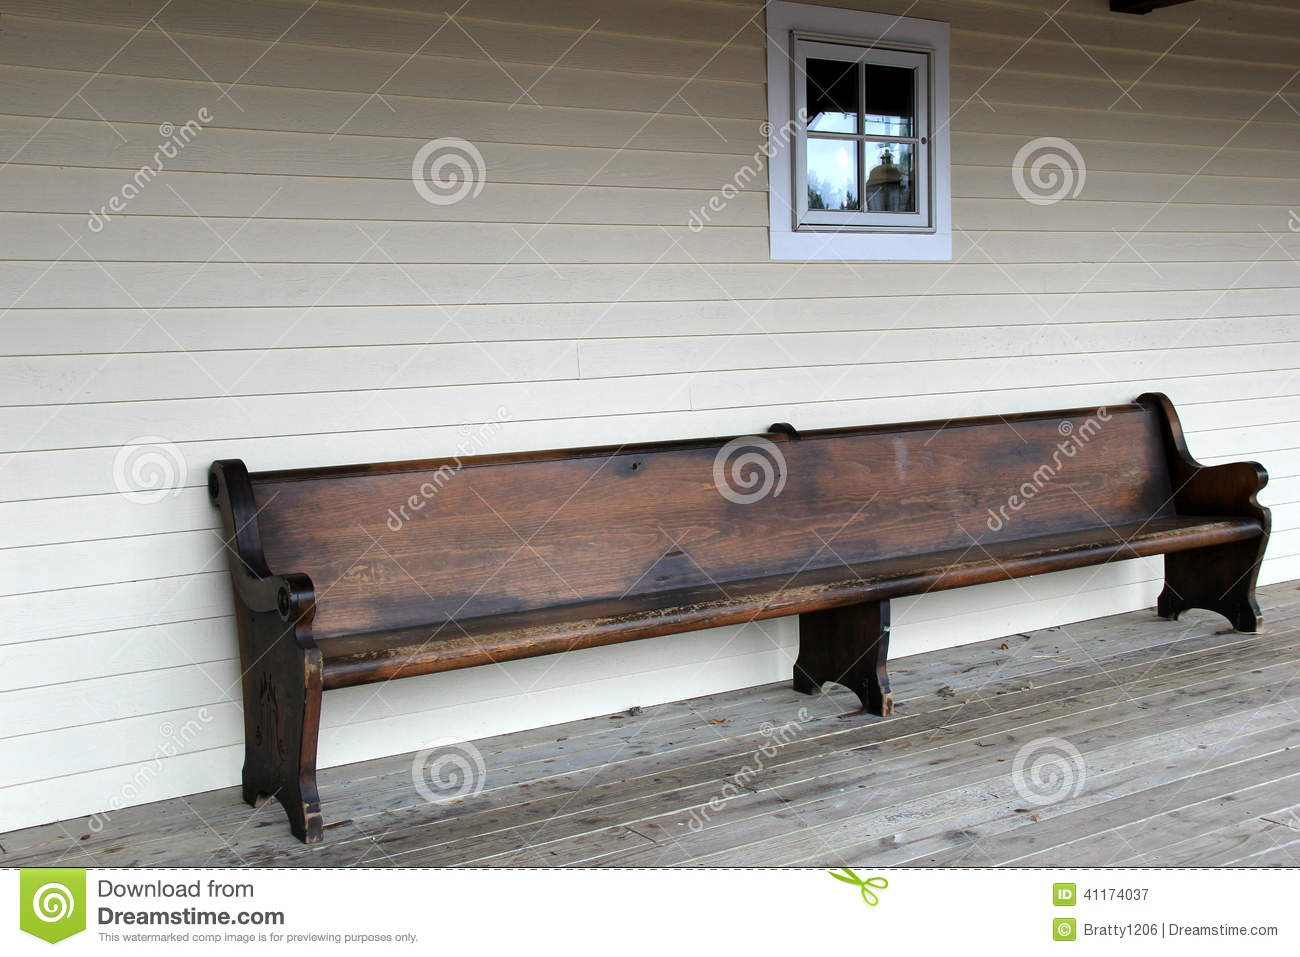 Gorgeous Warm Wood Of Old Bench Invites People To Come And Sit For Awhile  On Country Porch.